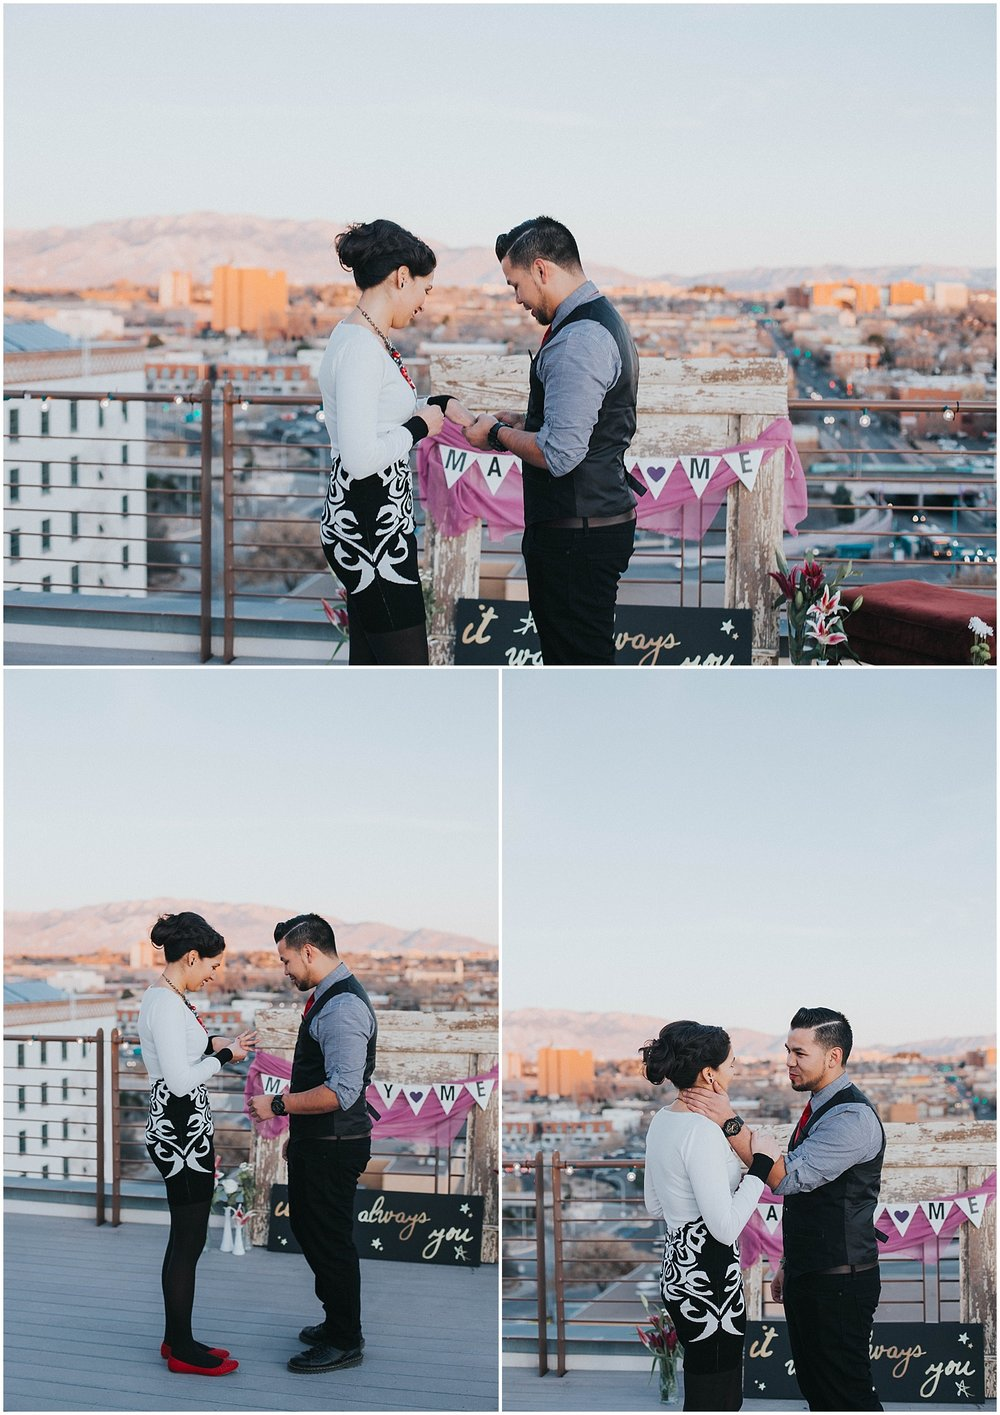 Banque-Lofts-Surprise-Proposal_Albuquerque-Banque-Lofts-Albuquerque-Wedding-Photographer_0011.jpg